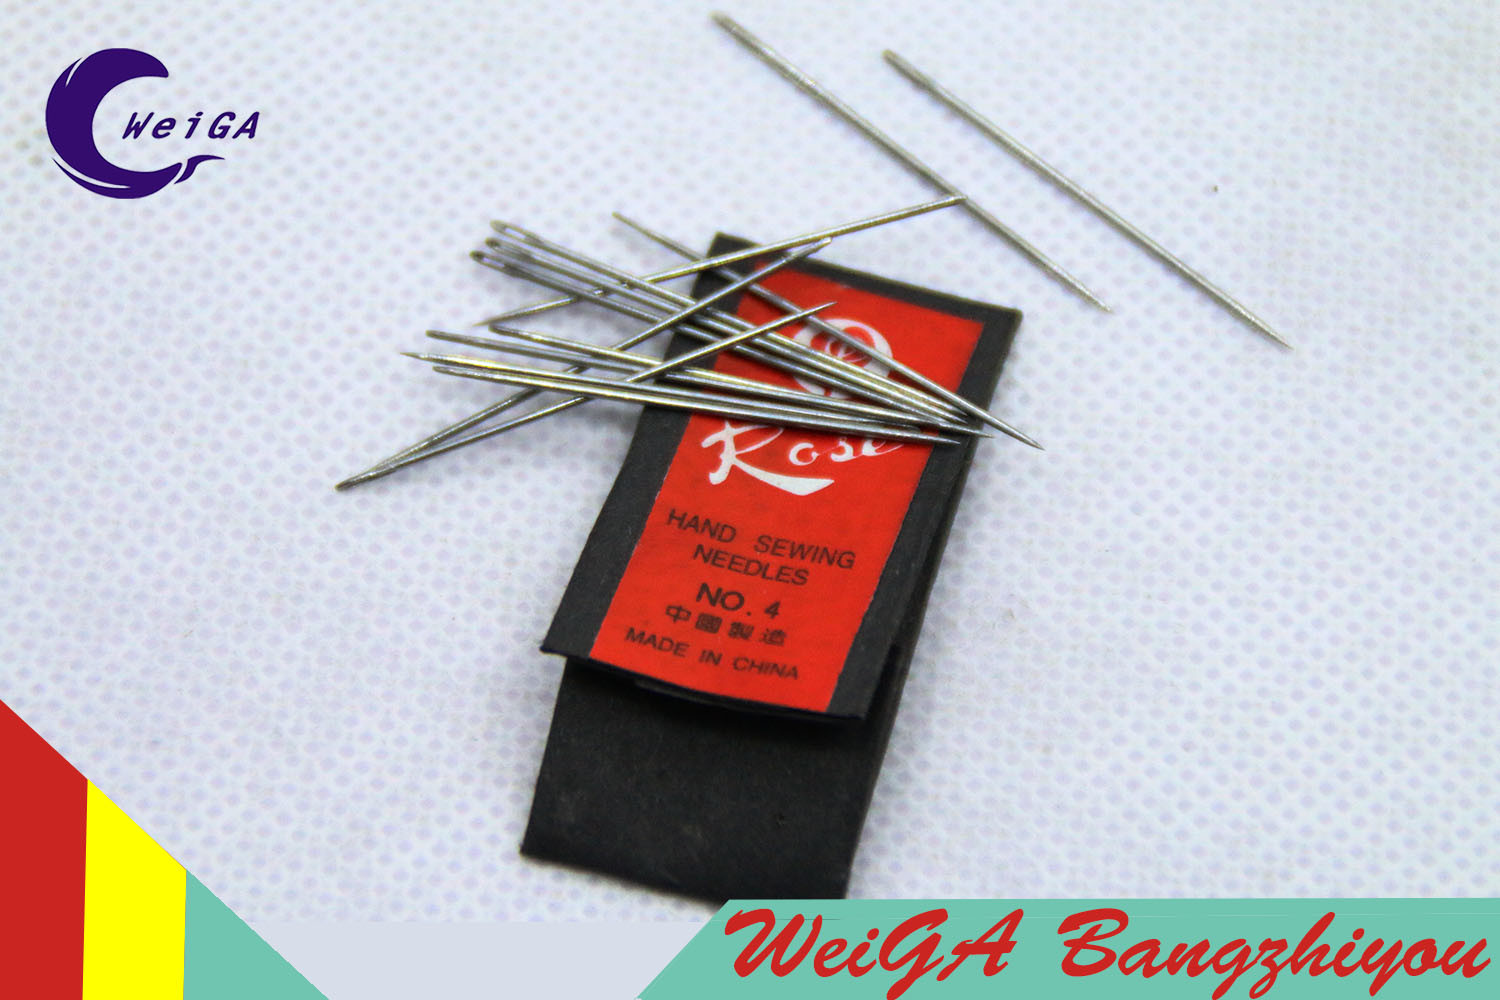 Original Rose Brand Hand Sewing Needle No. 4